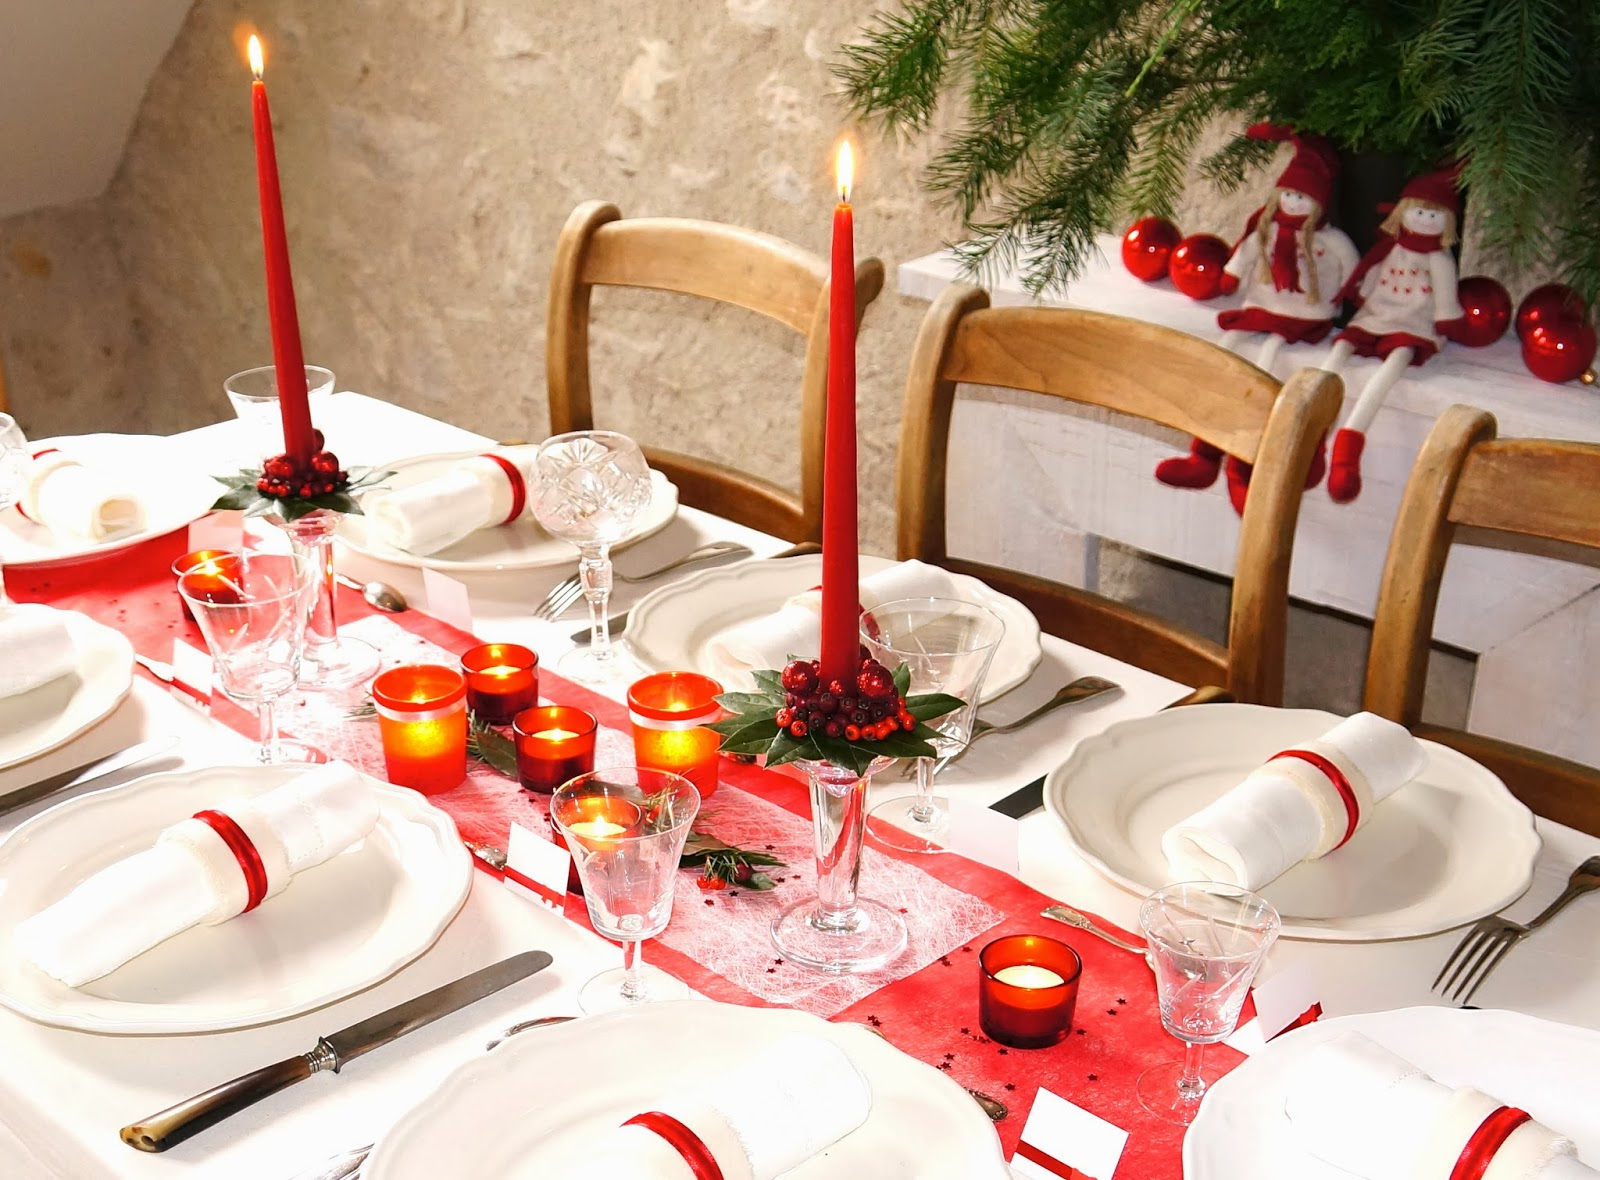 Ma boutique d co table d coration de table d coration de table de no l en - Deco pour table de noel ...